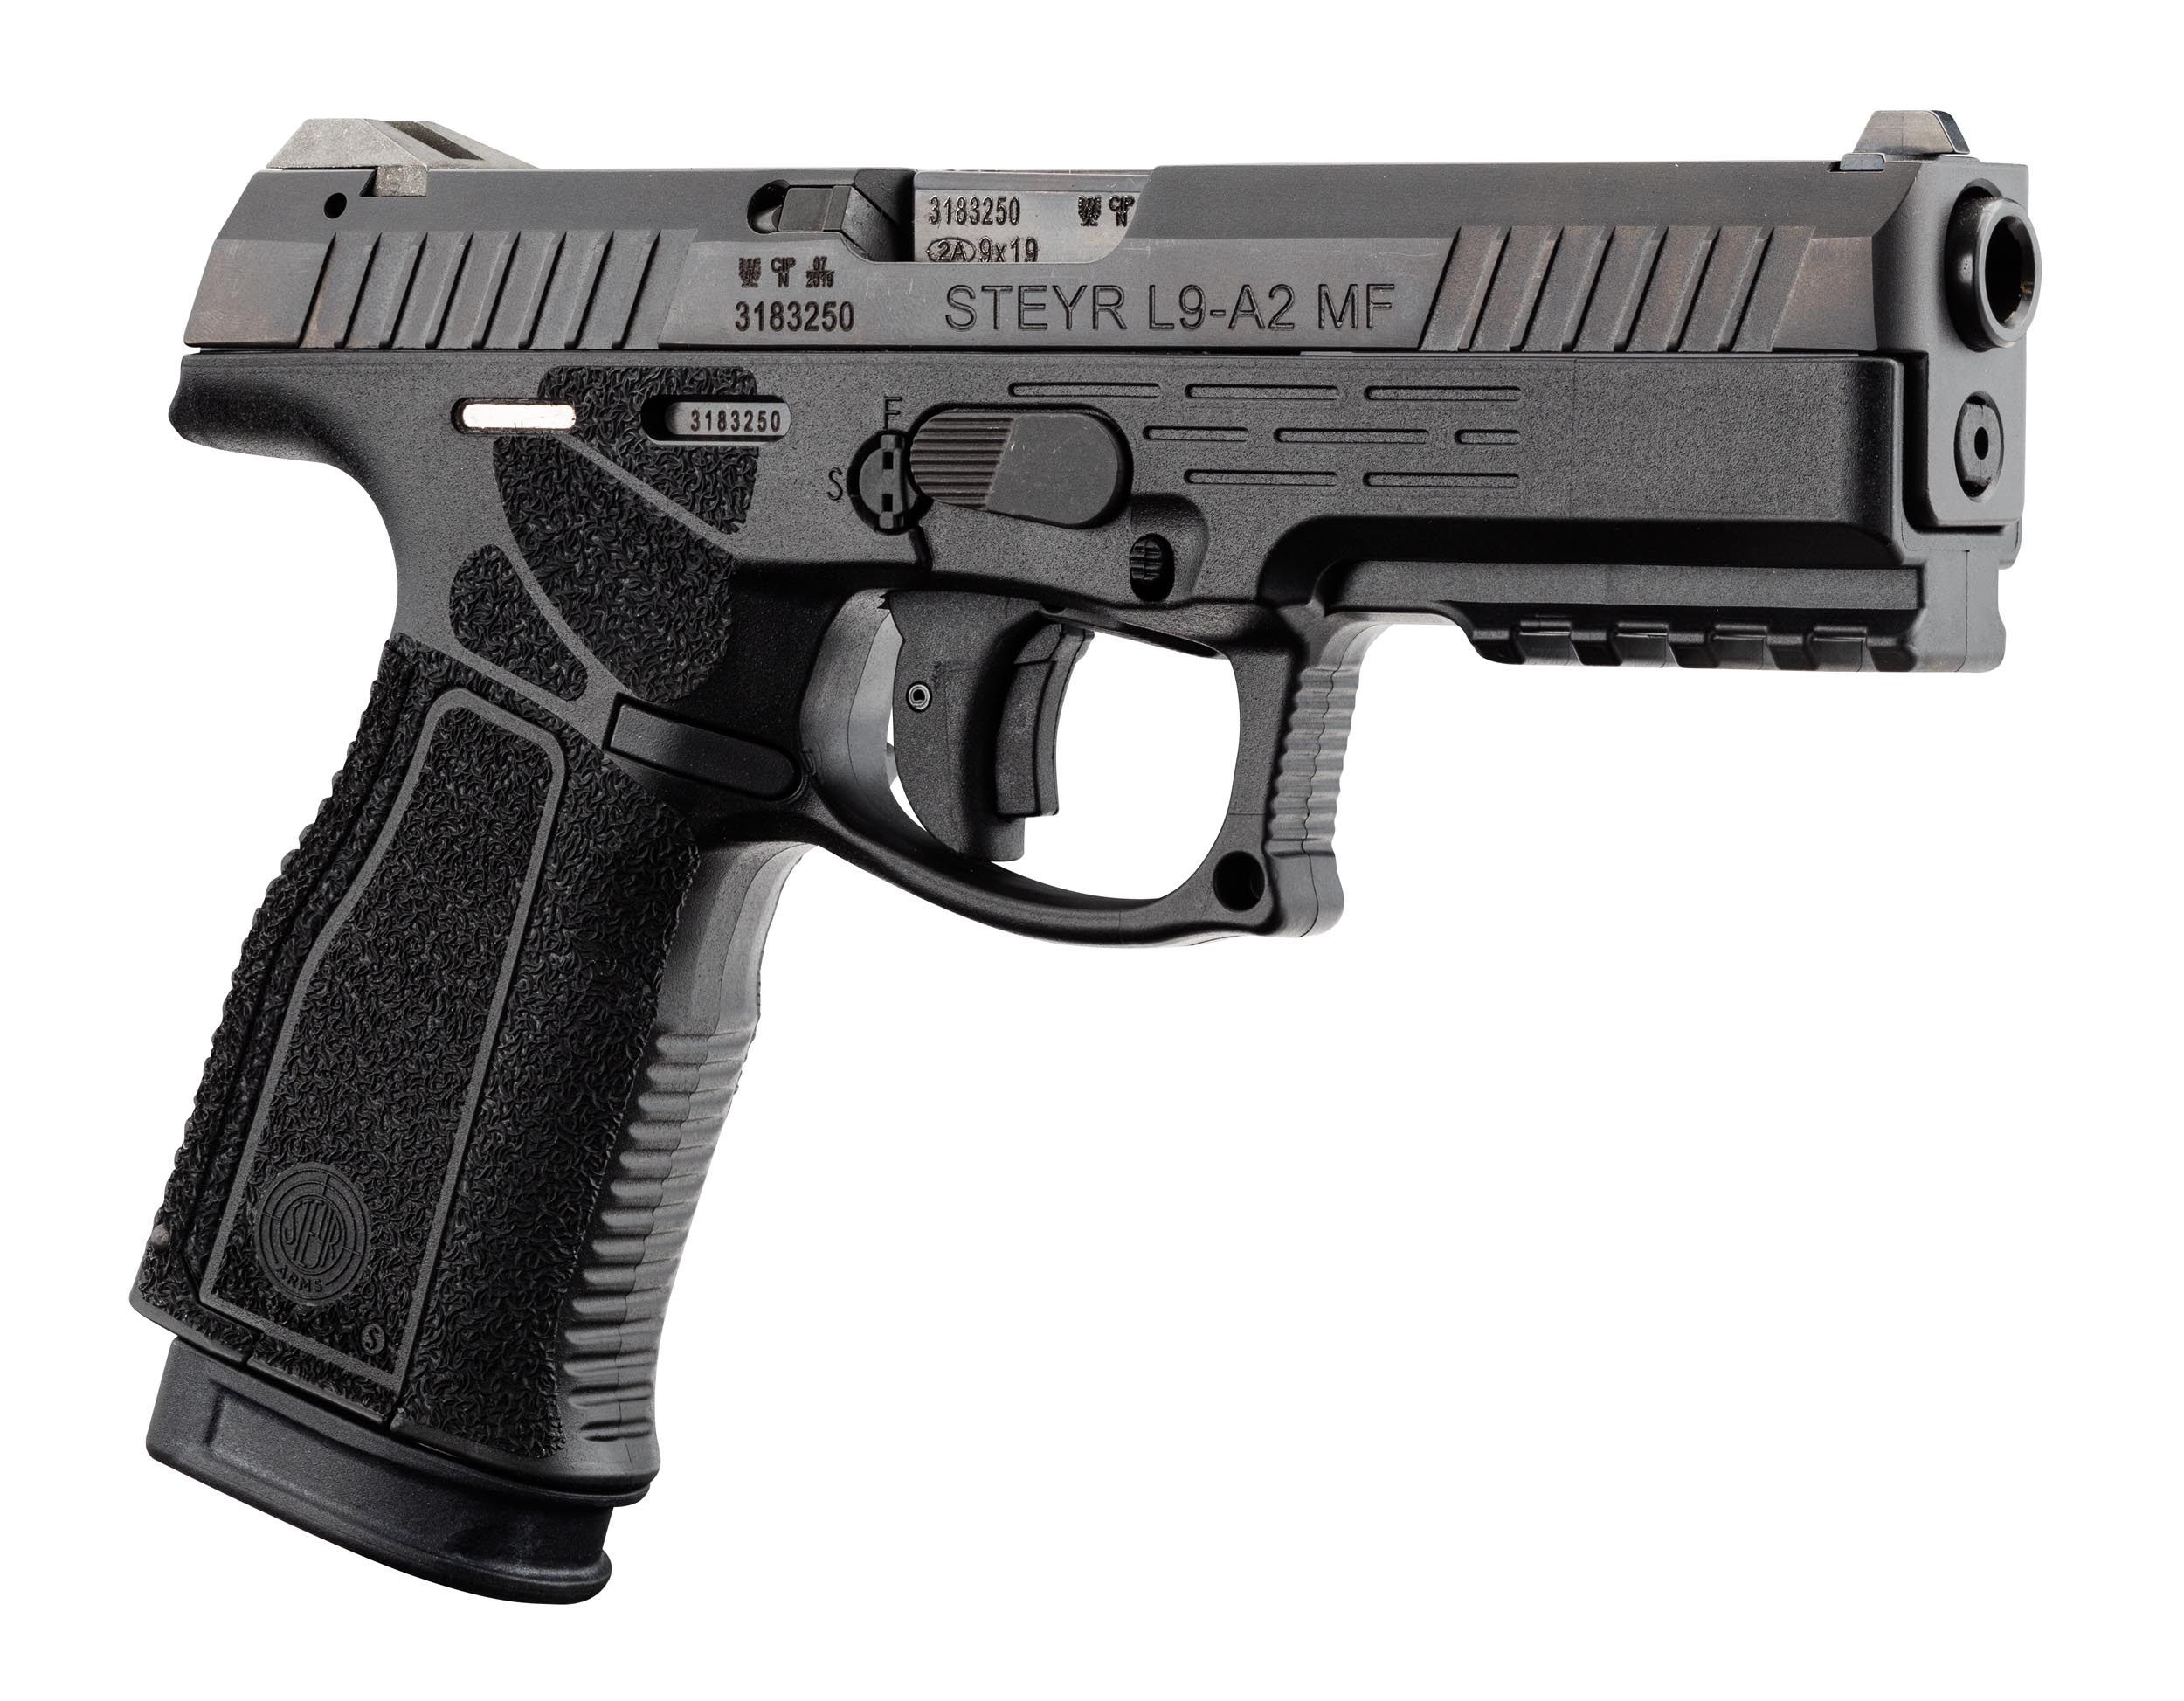 ST3510-1 Pistolet Steyr L-A2 MF Cal.9 mm - ST3510